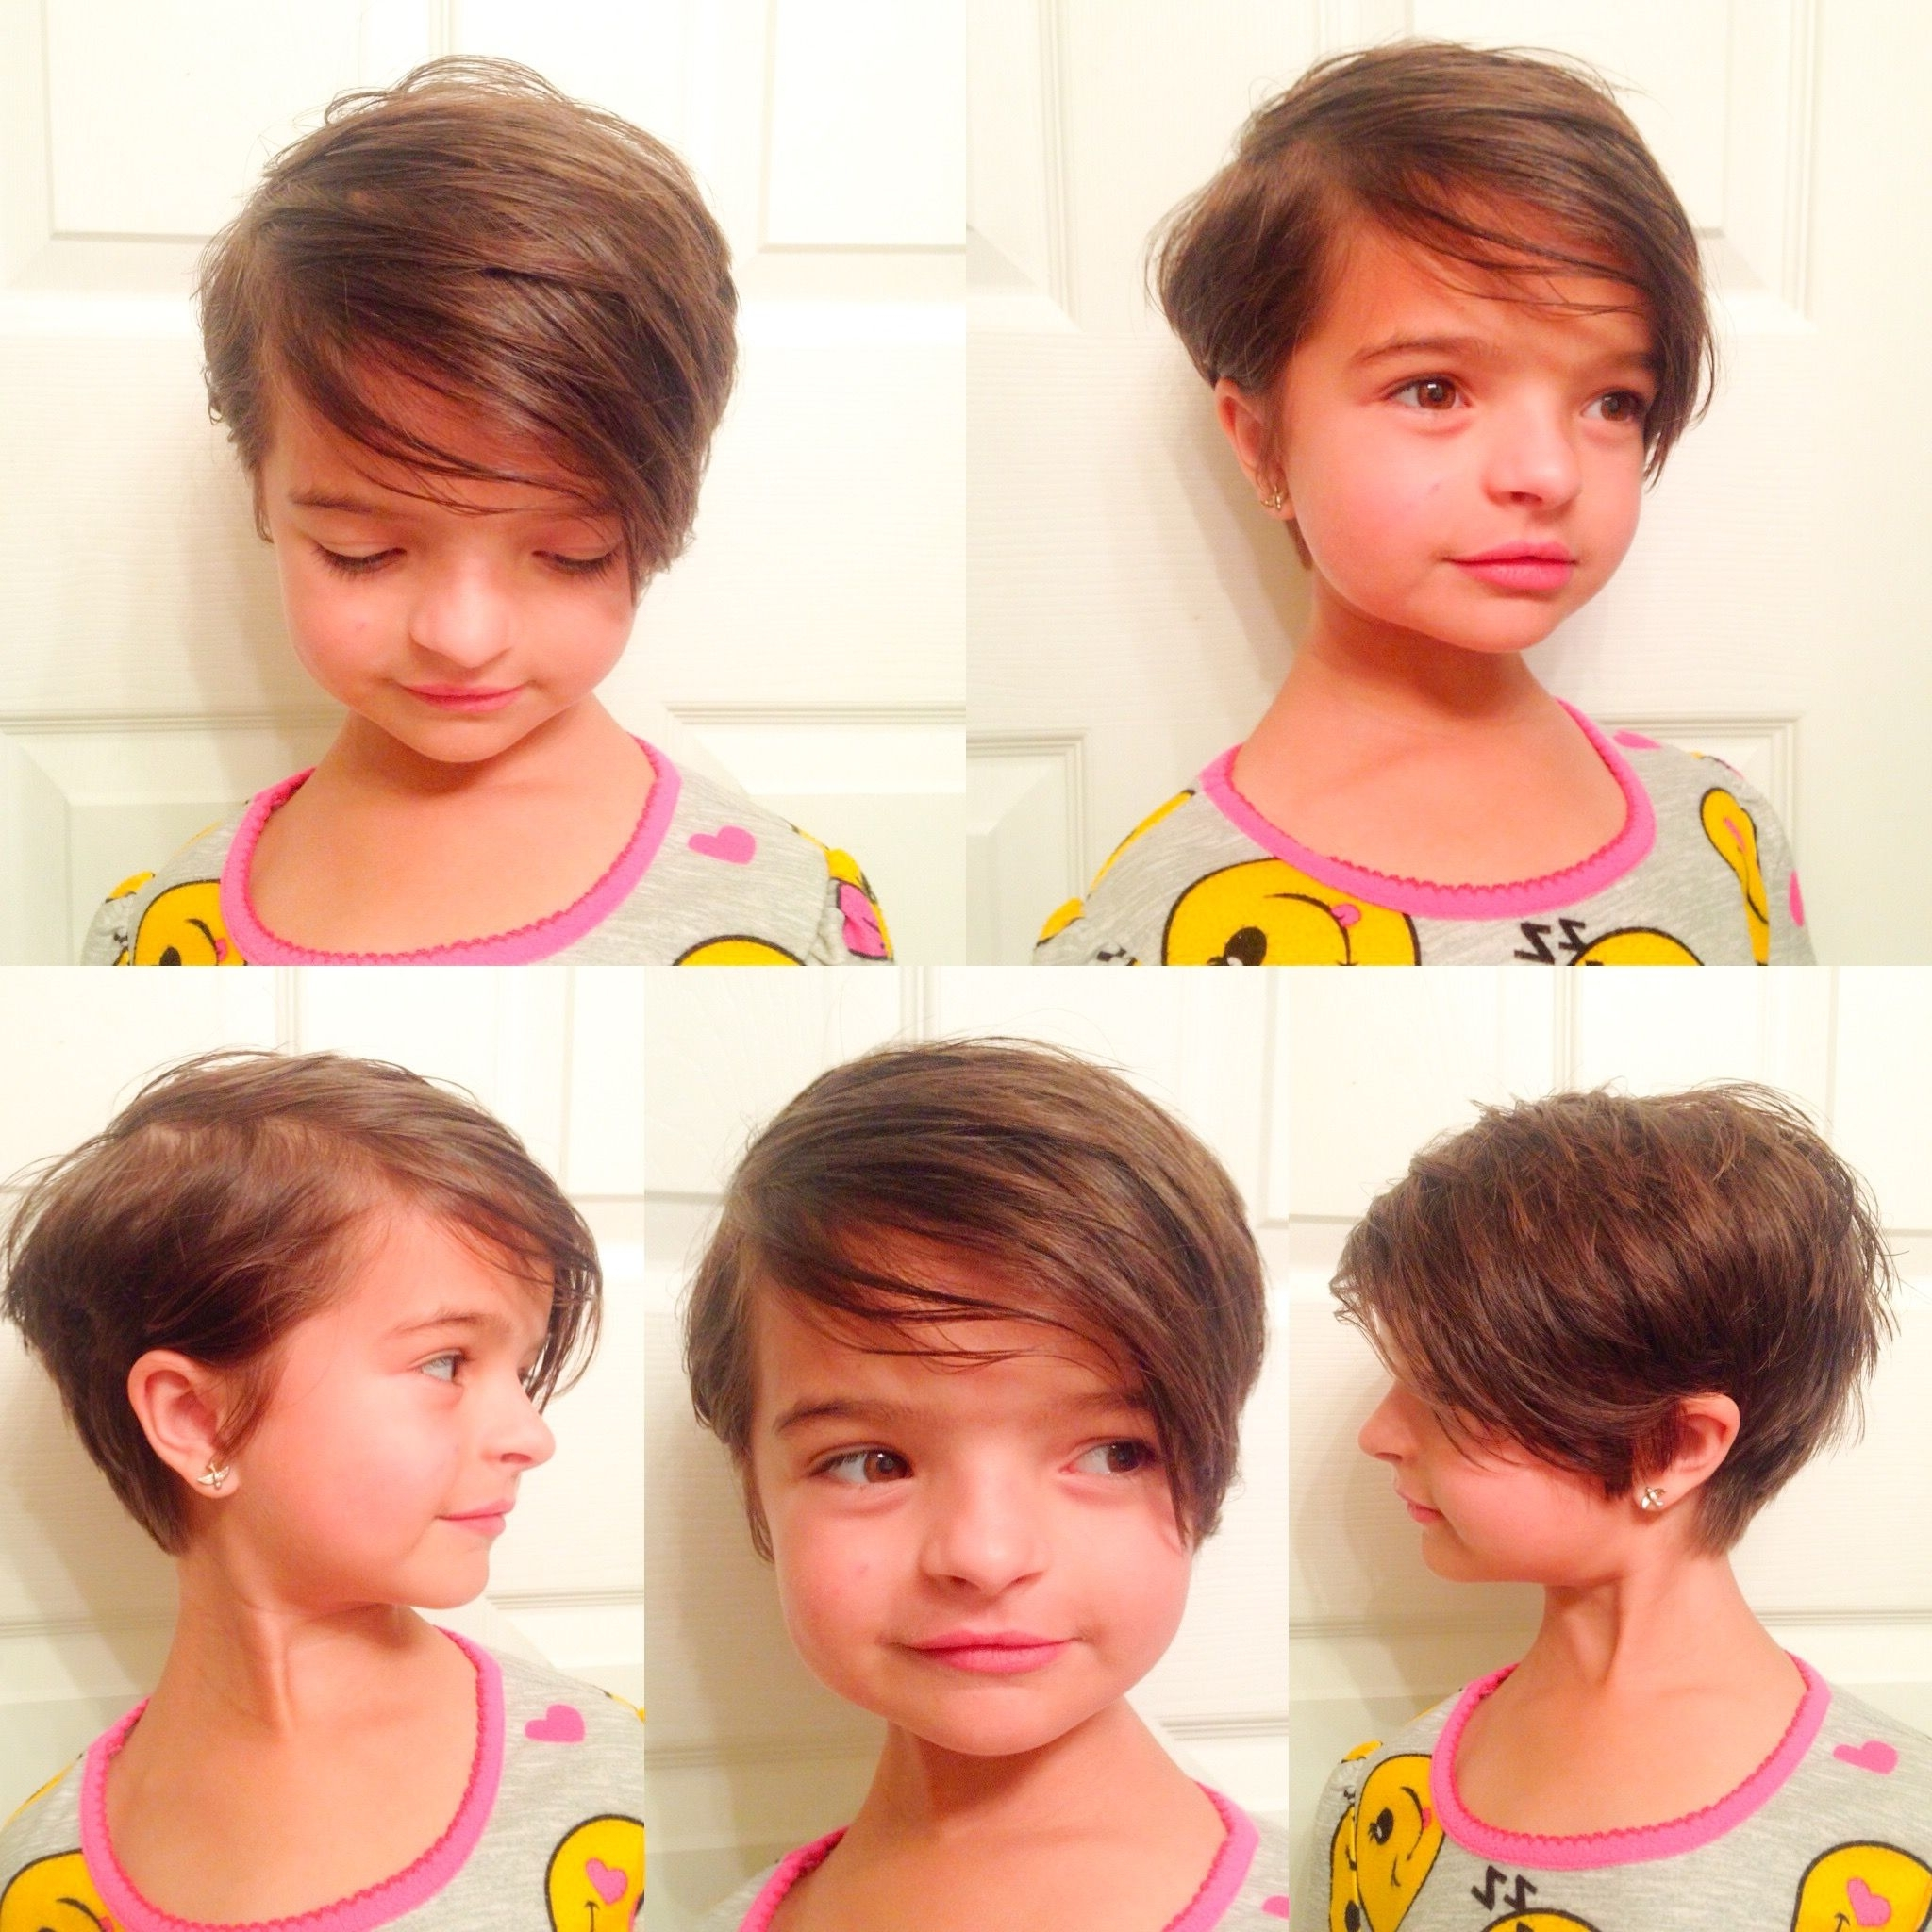 Little Girl's Haircut, Little Girl's Hairstyle, Pixie Cut, Short Pertaining To Best And Newest Girls Pixie Hairstyles (View 2 of 15)